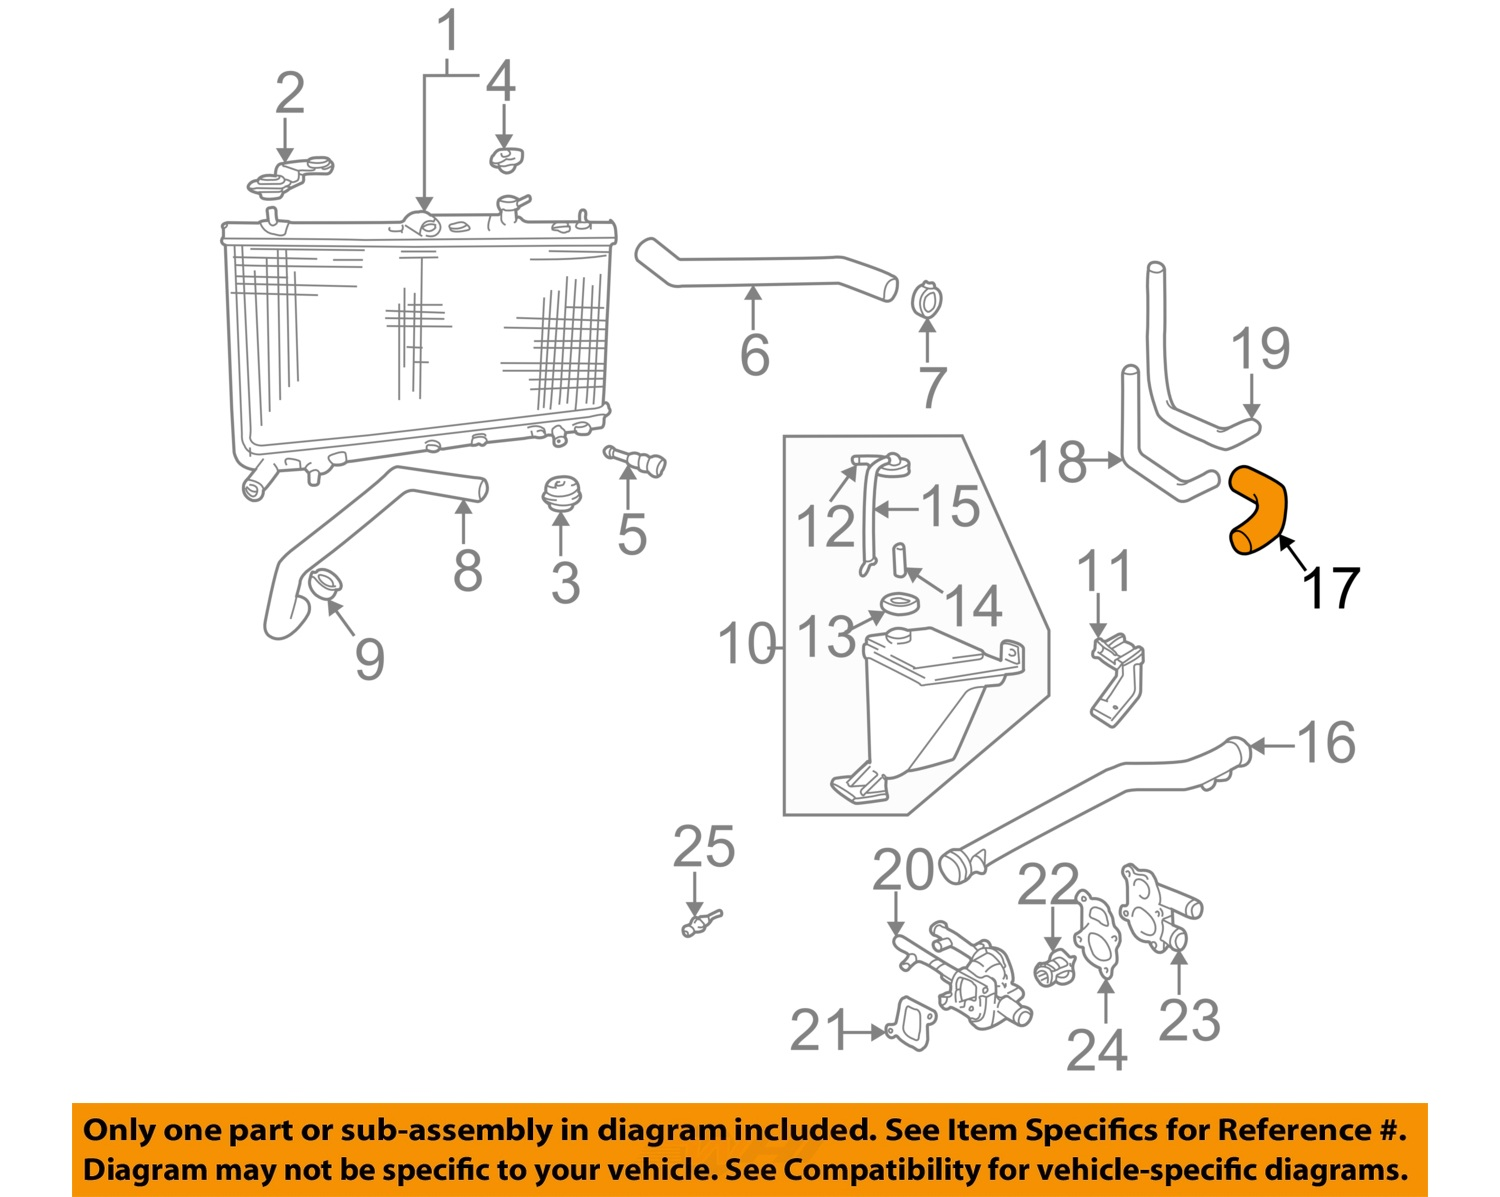 service manual installing a 2004 hyundai accent starter Hyundai Accent  Schematic Diagrams Hyundai Accent Schematic Diagrams